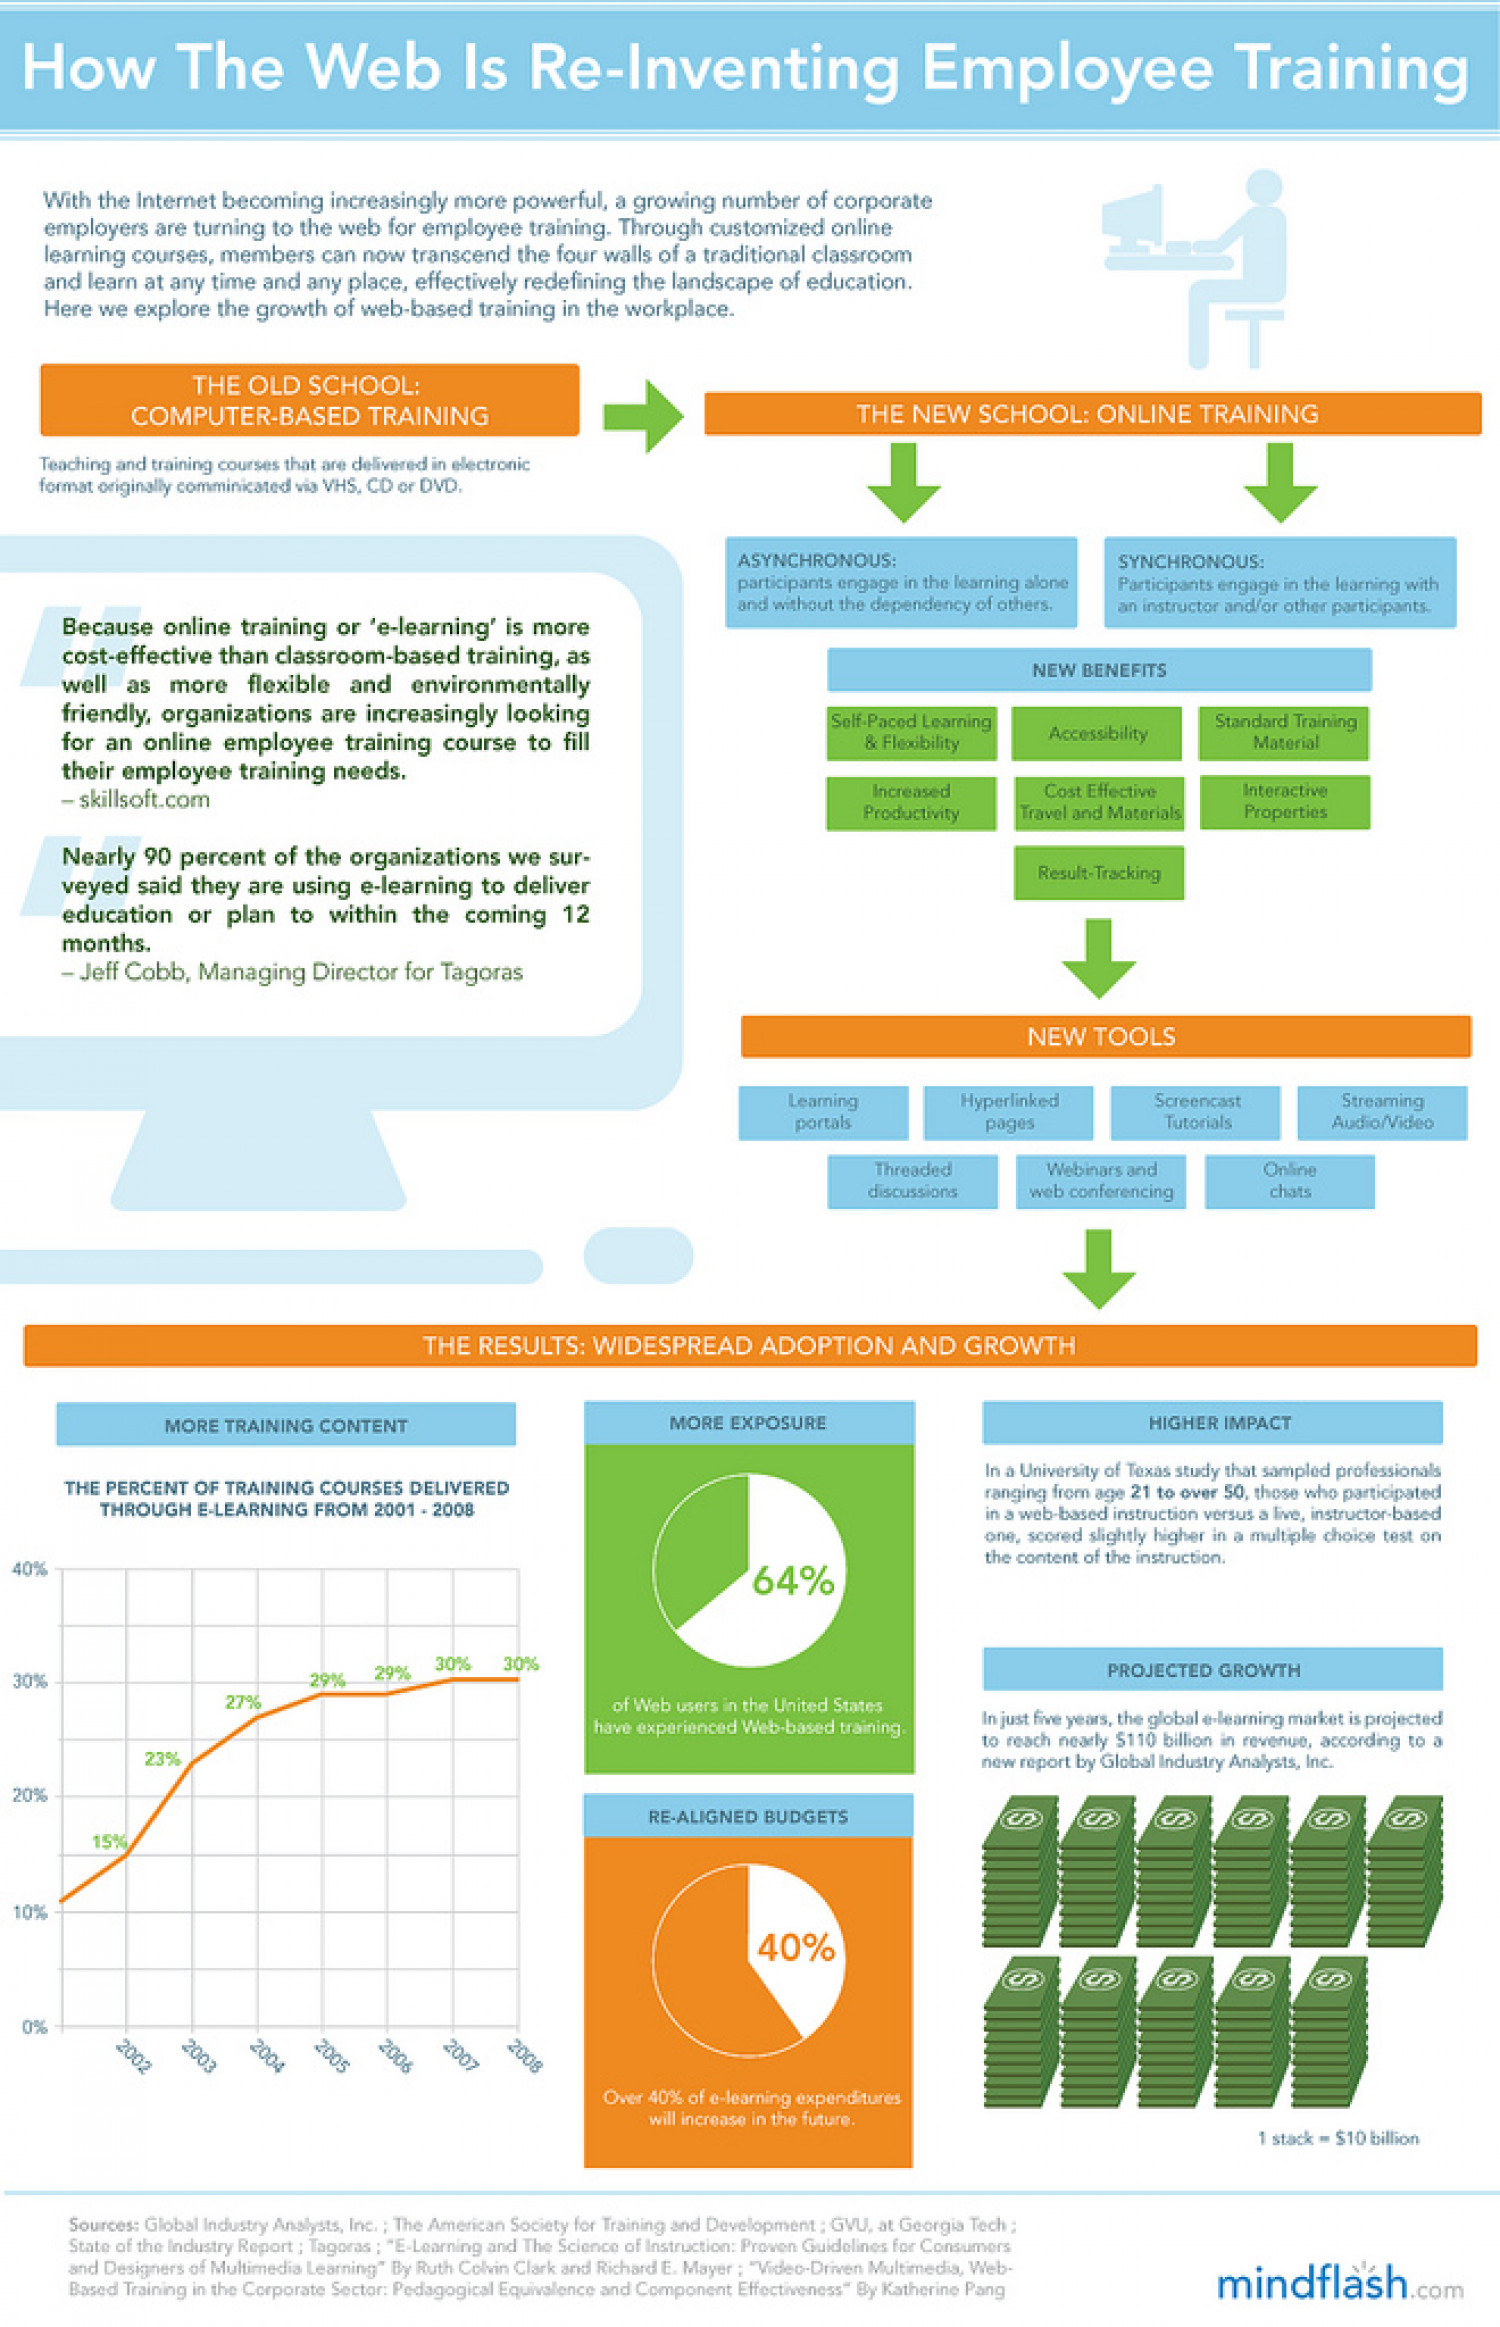 How The Web Is Re-Inventing Employee Trainining Infographic